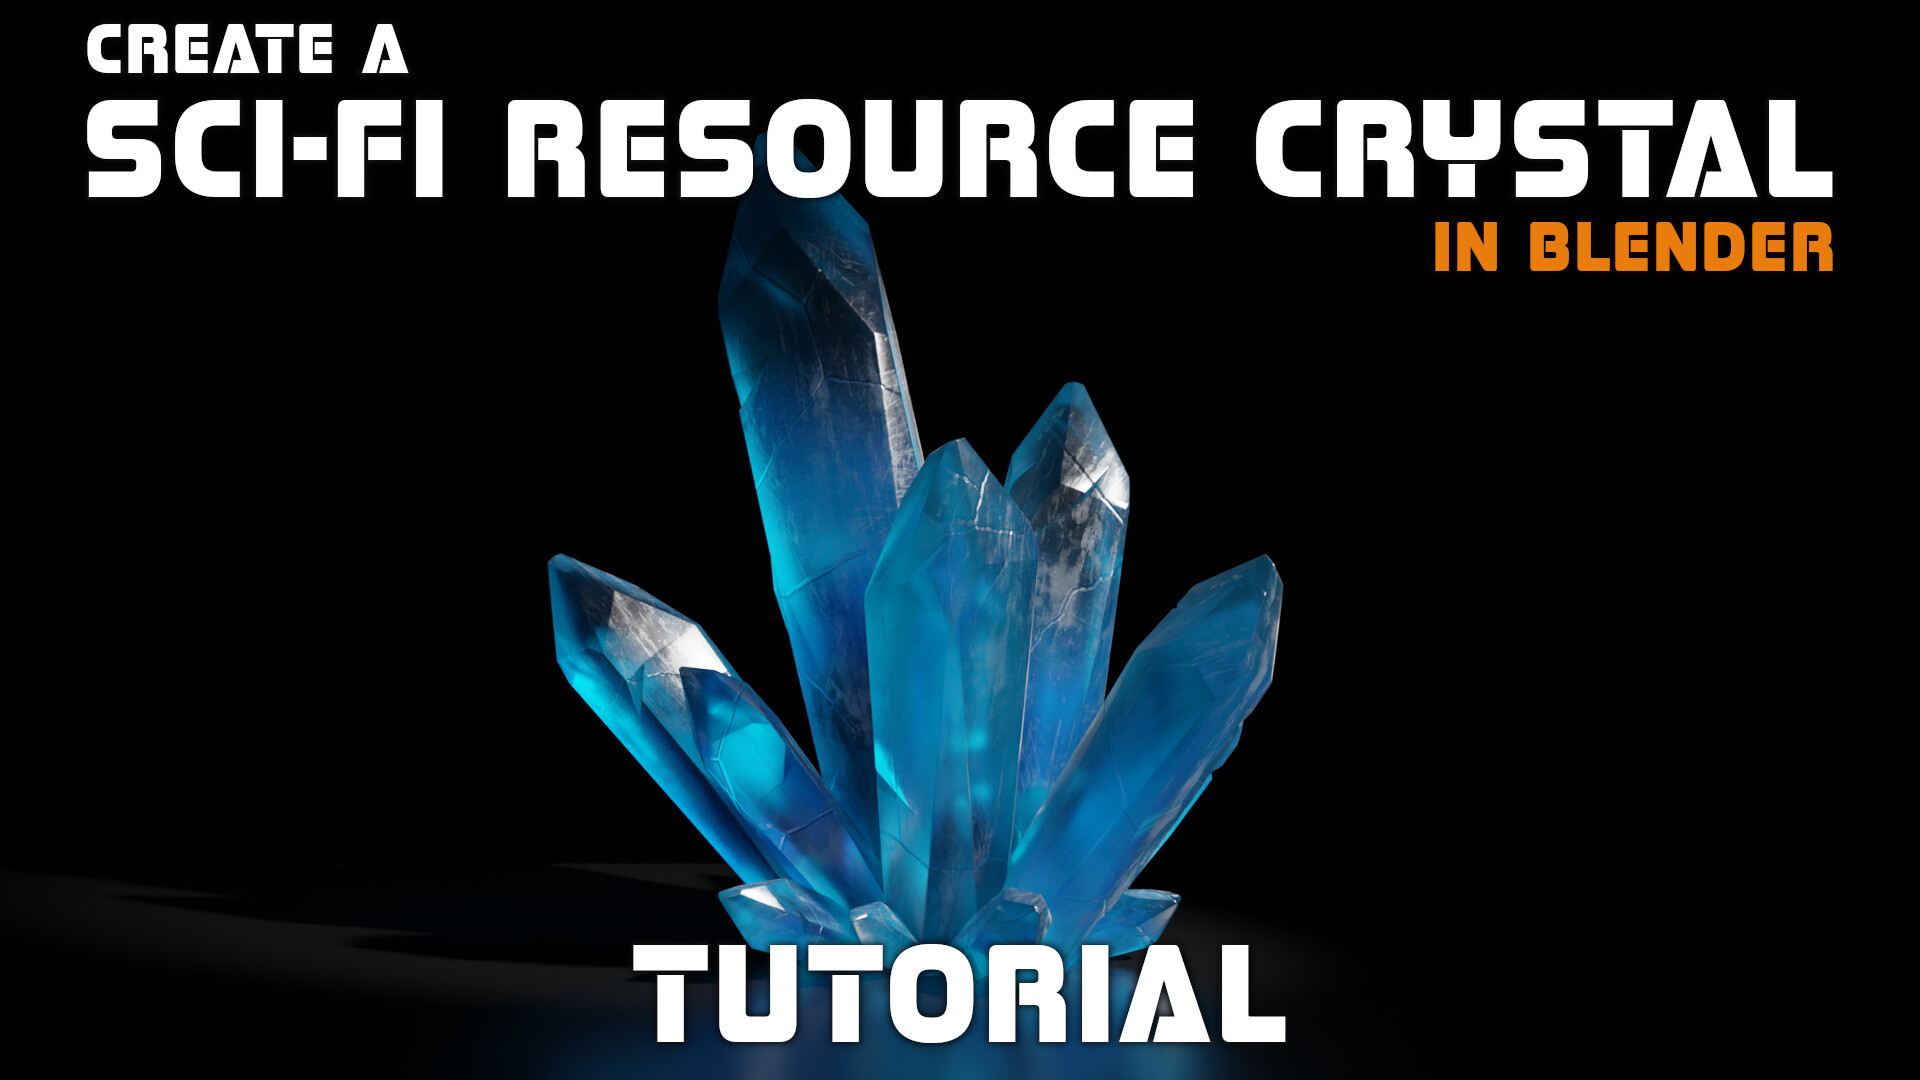 A tutorial on creating the crystals in this scene can be found her: https://artofkarlb.com/projects/gJZ5NE  The crystals are also available as 3D assets in my store https://artofkarlb.com/store/RvGd/sci-fi-fantasy-crystal